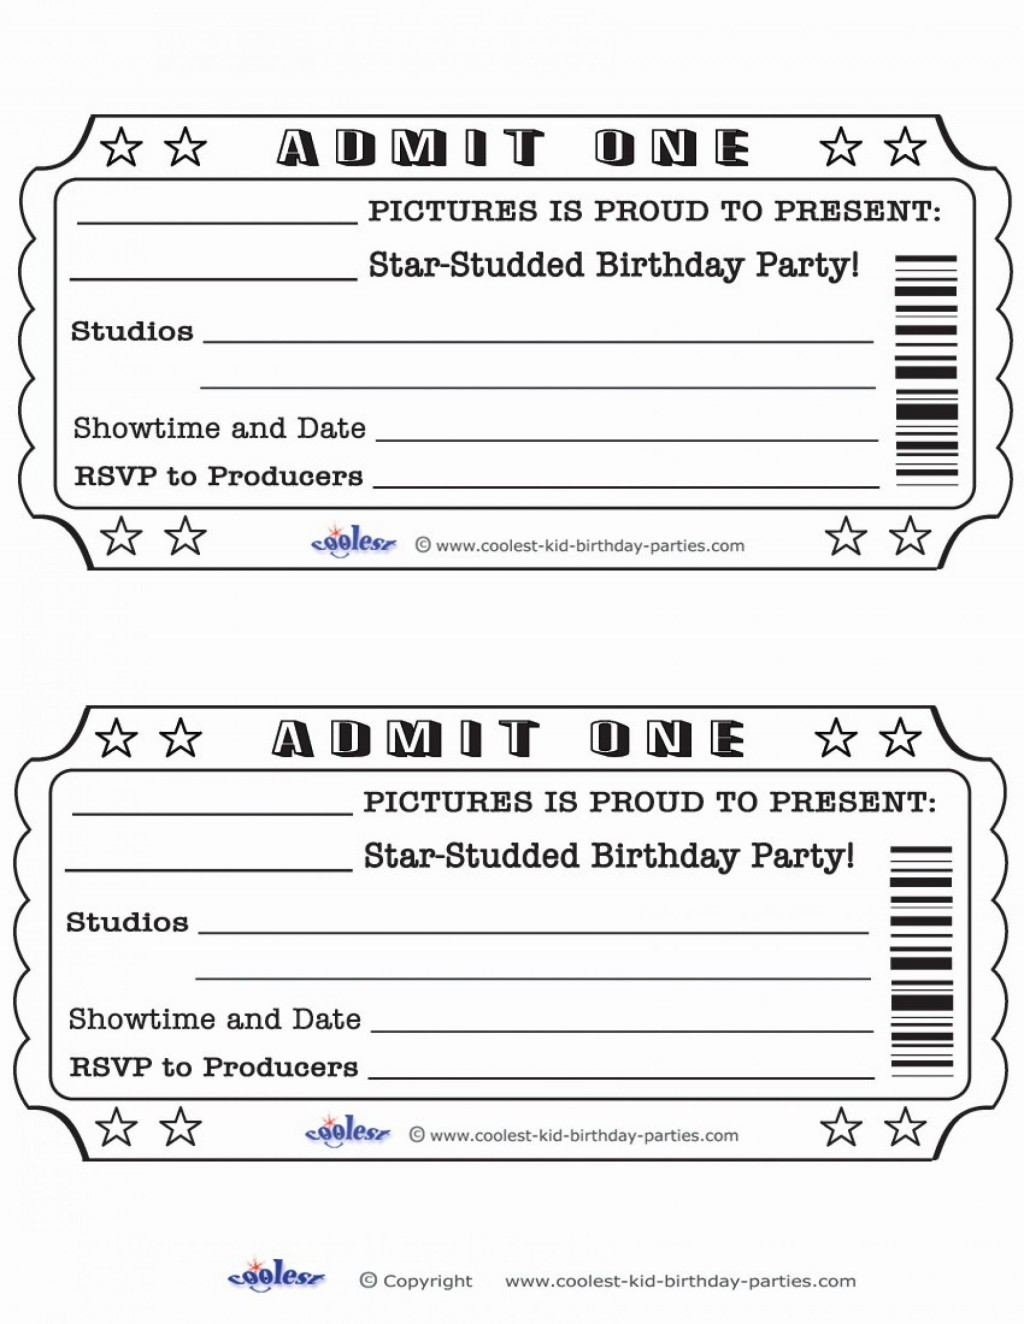 004 Unusual Free Printable Ticket Template High Definition  Raffle Printing Airline For Gift ConcertLarge